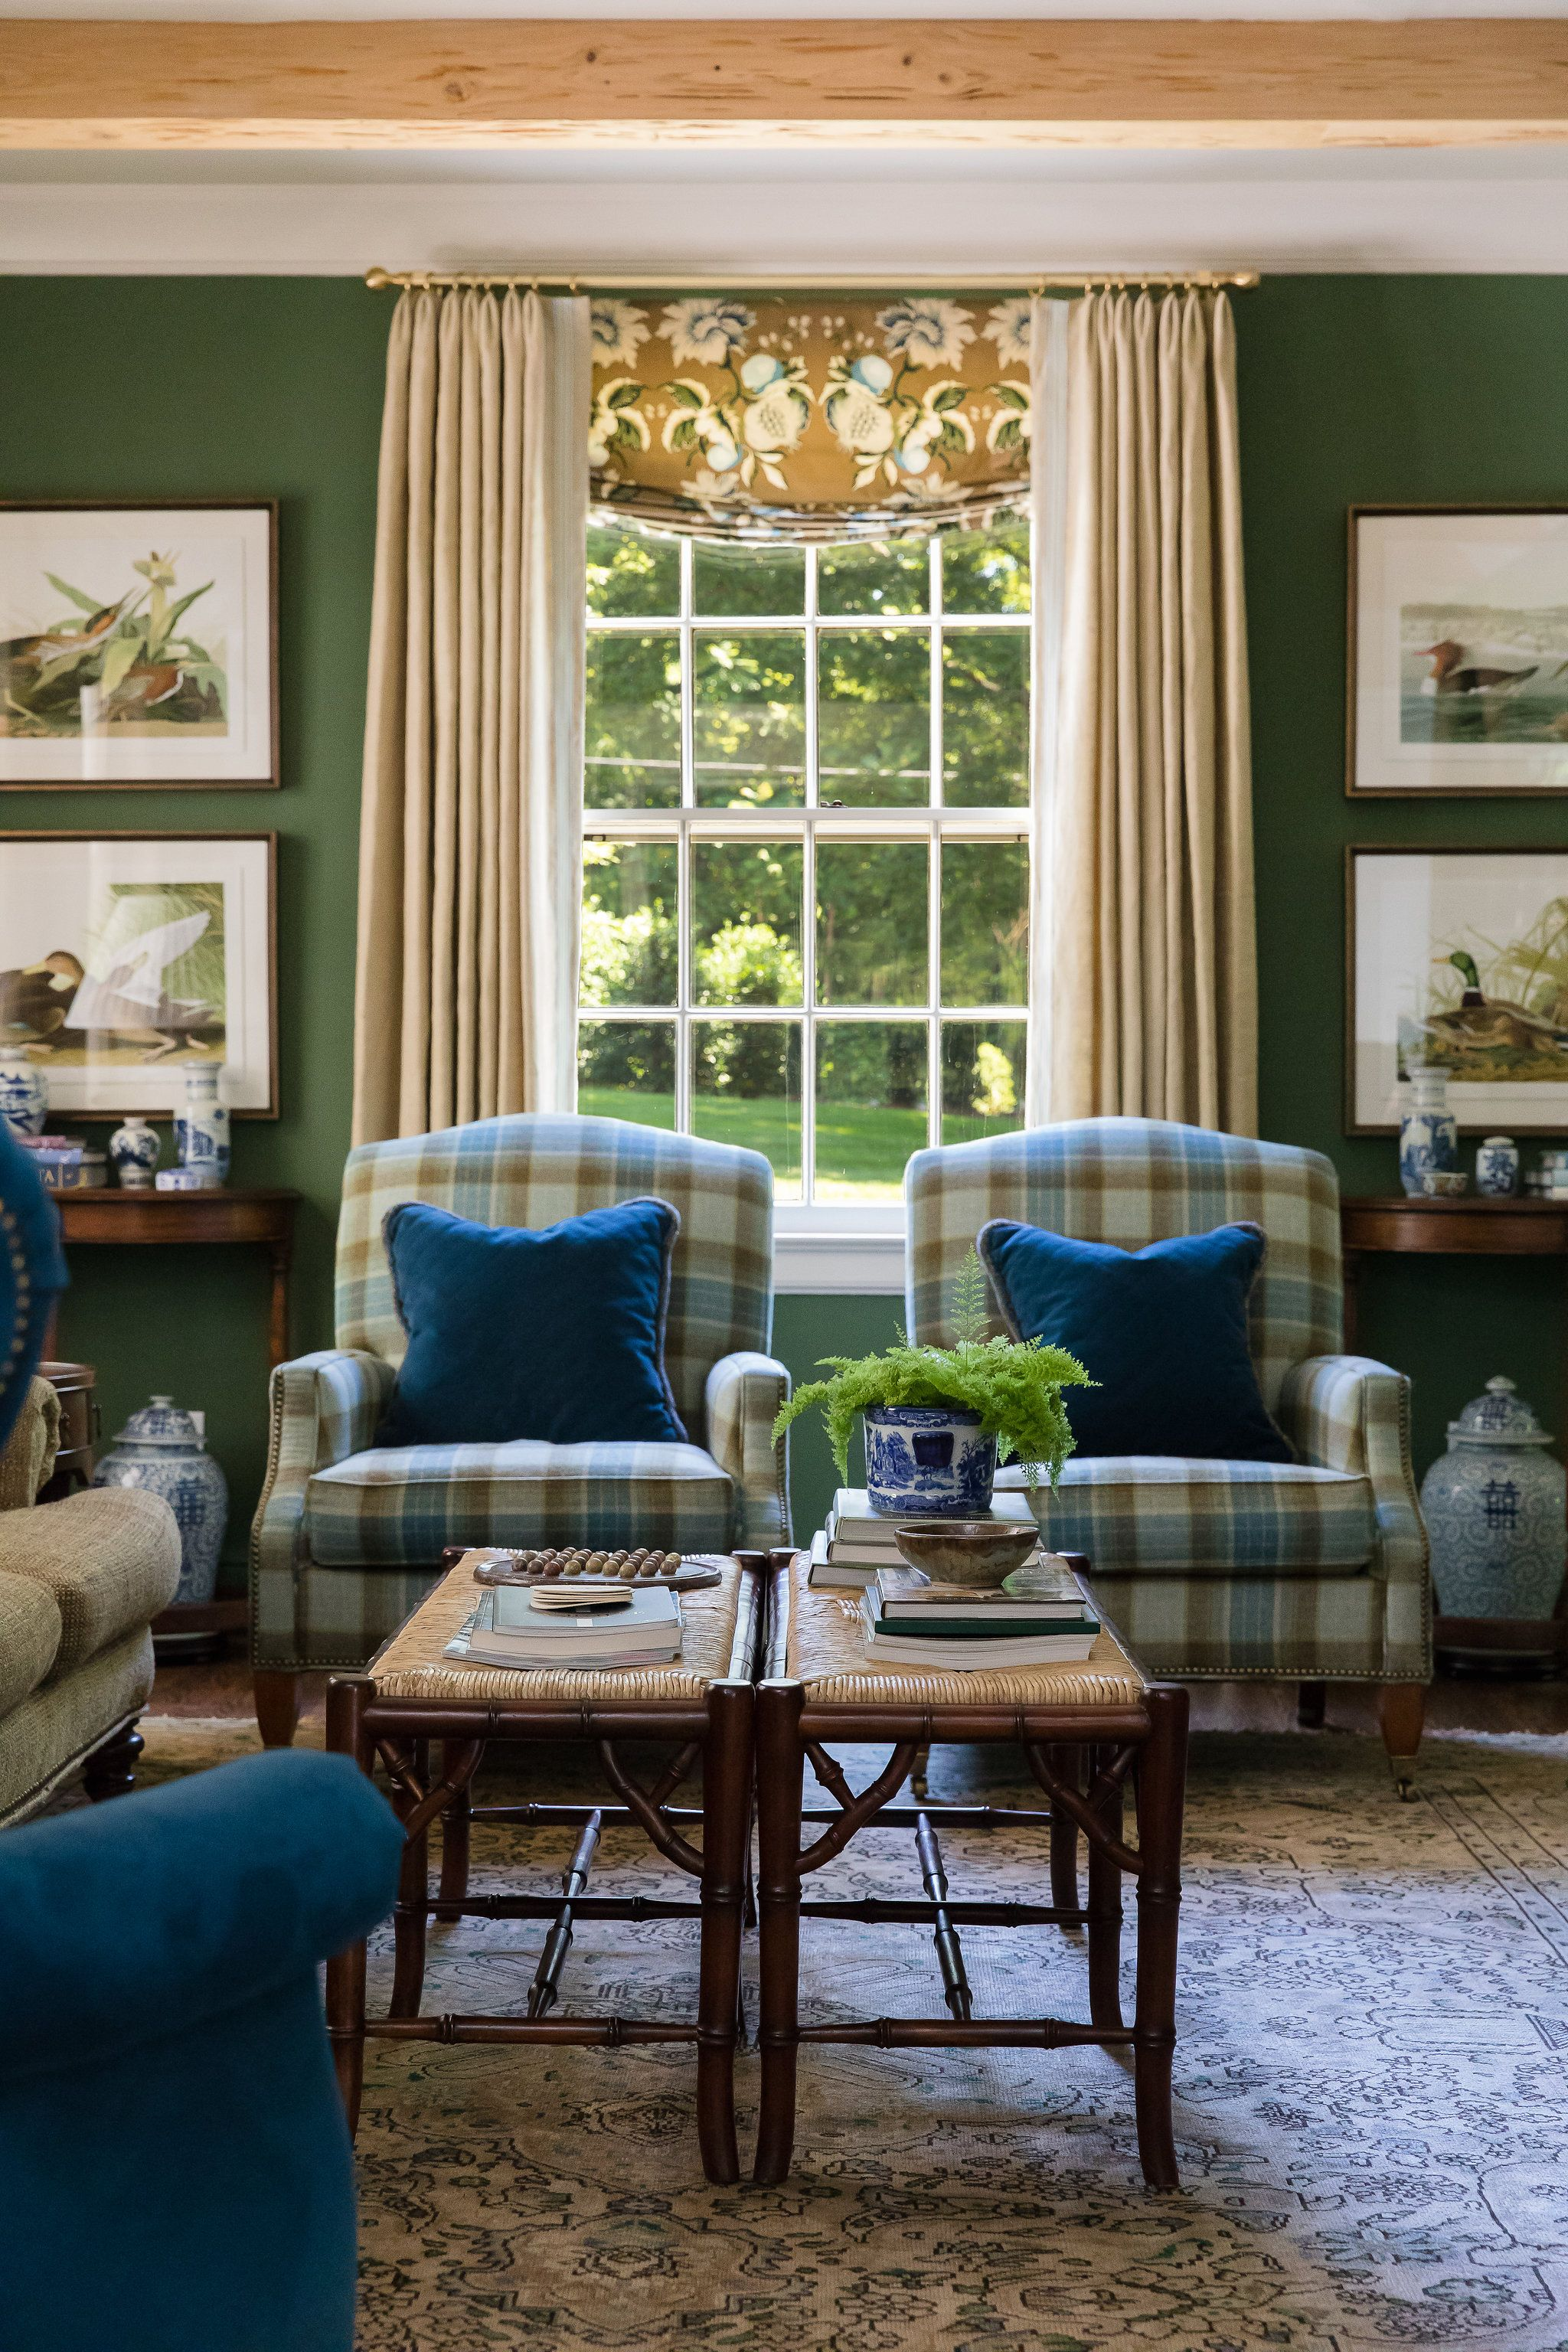 Cozy Southern Living Room Living Room Green Home Decor House Interior Southern living room decor